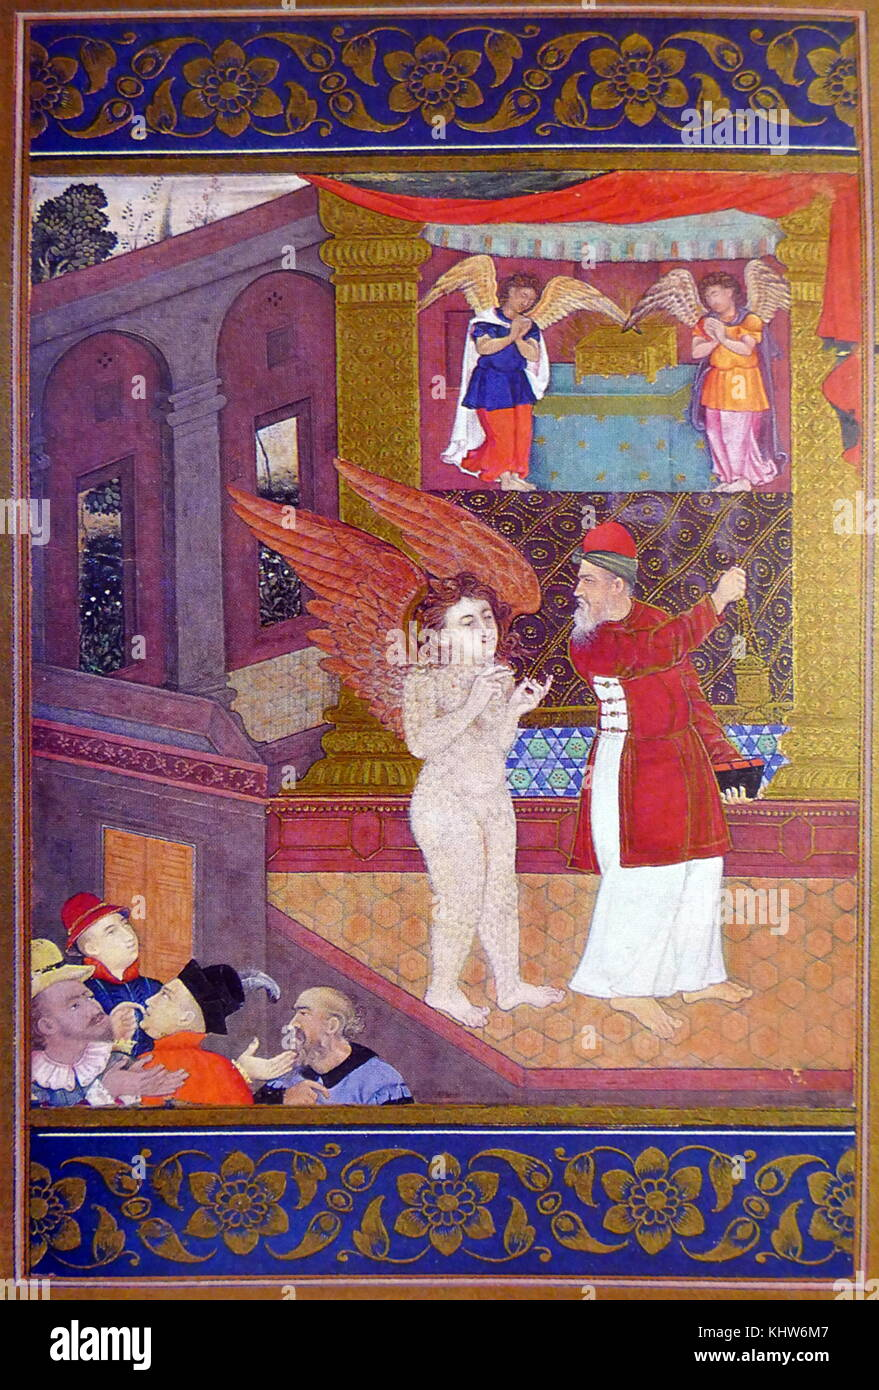 Mughal painting depicting Abraham being visited by Angels. The patriarch, holding a book and censer, looks back - Stock Image